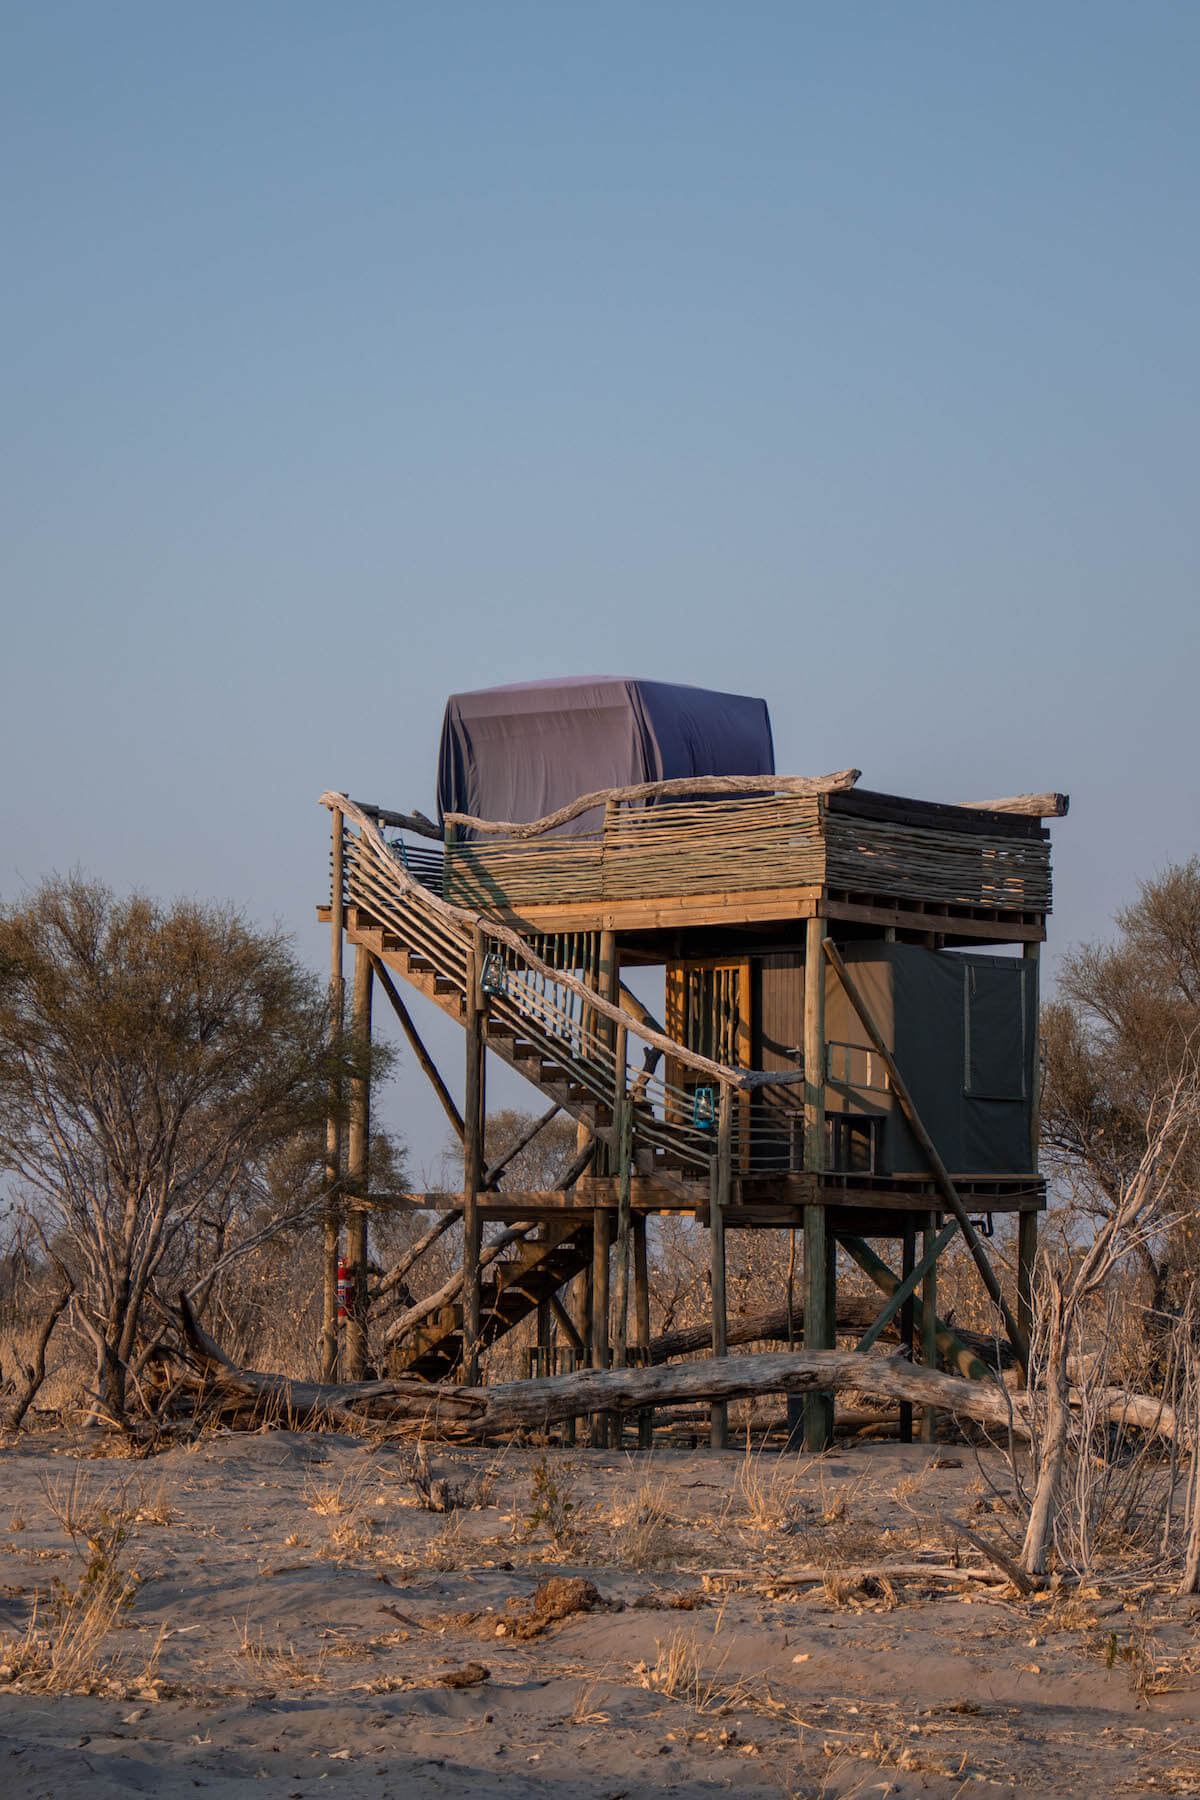 Staying at Skybeds in the Okavango Delta, the most amazing room